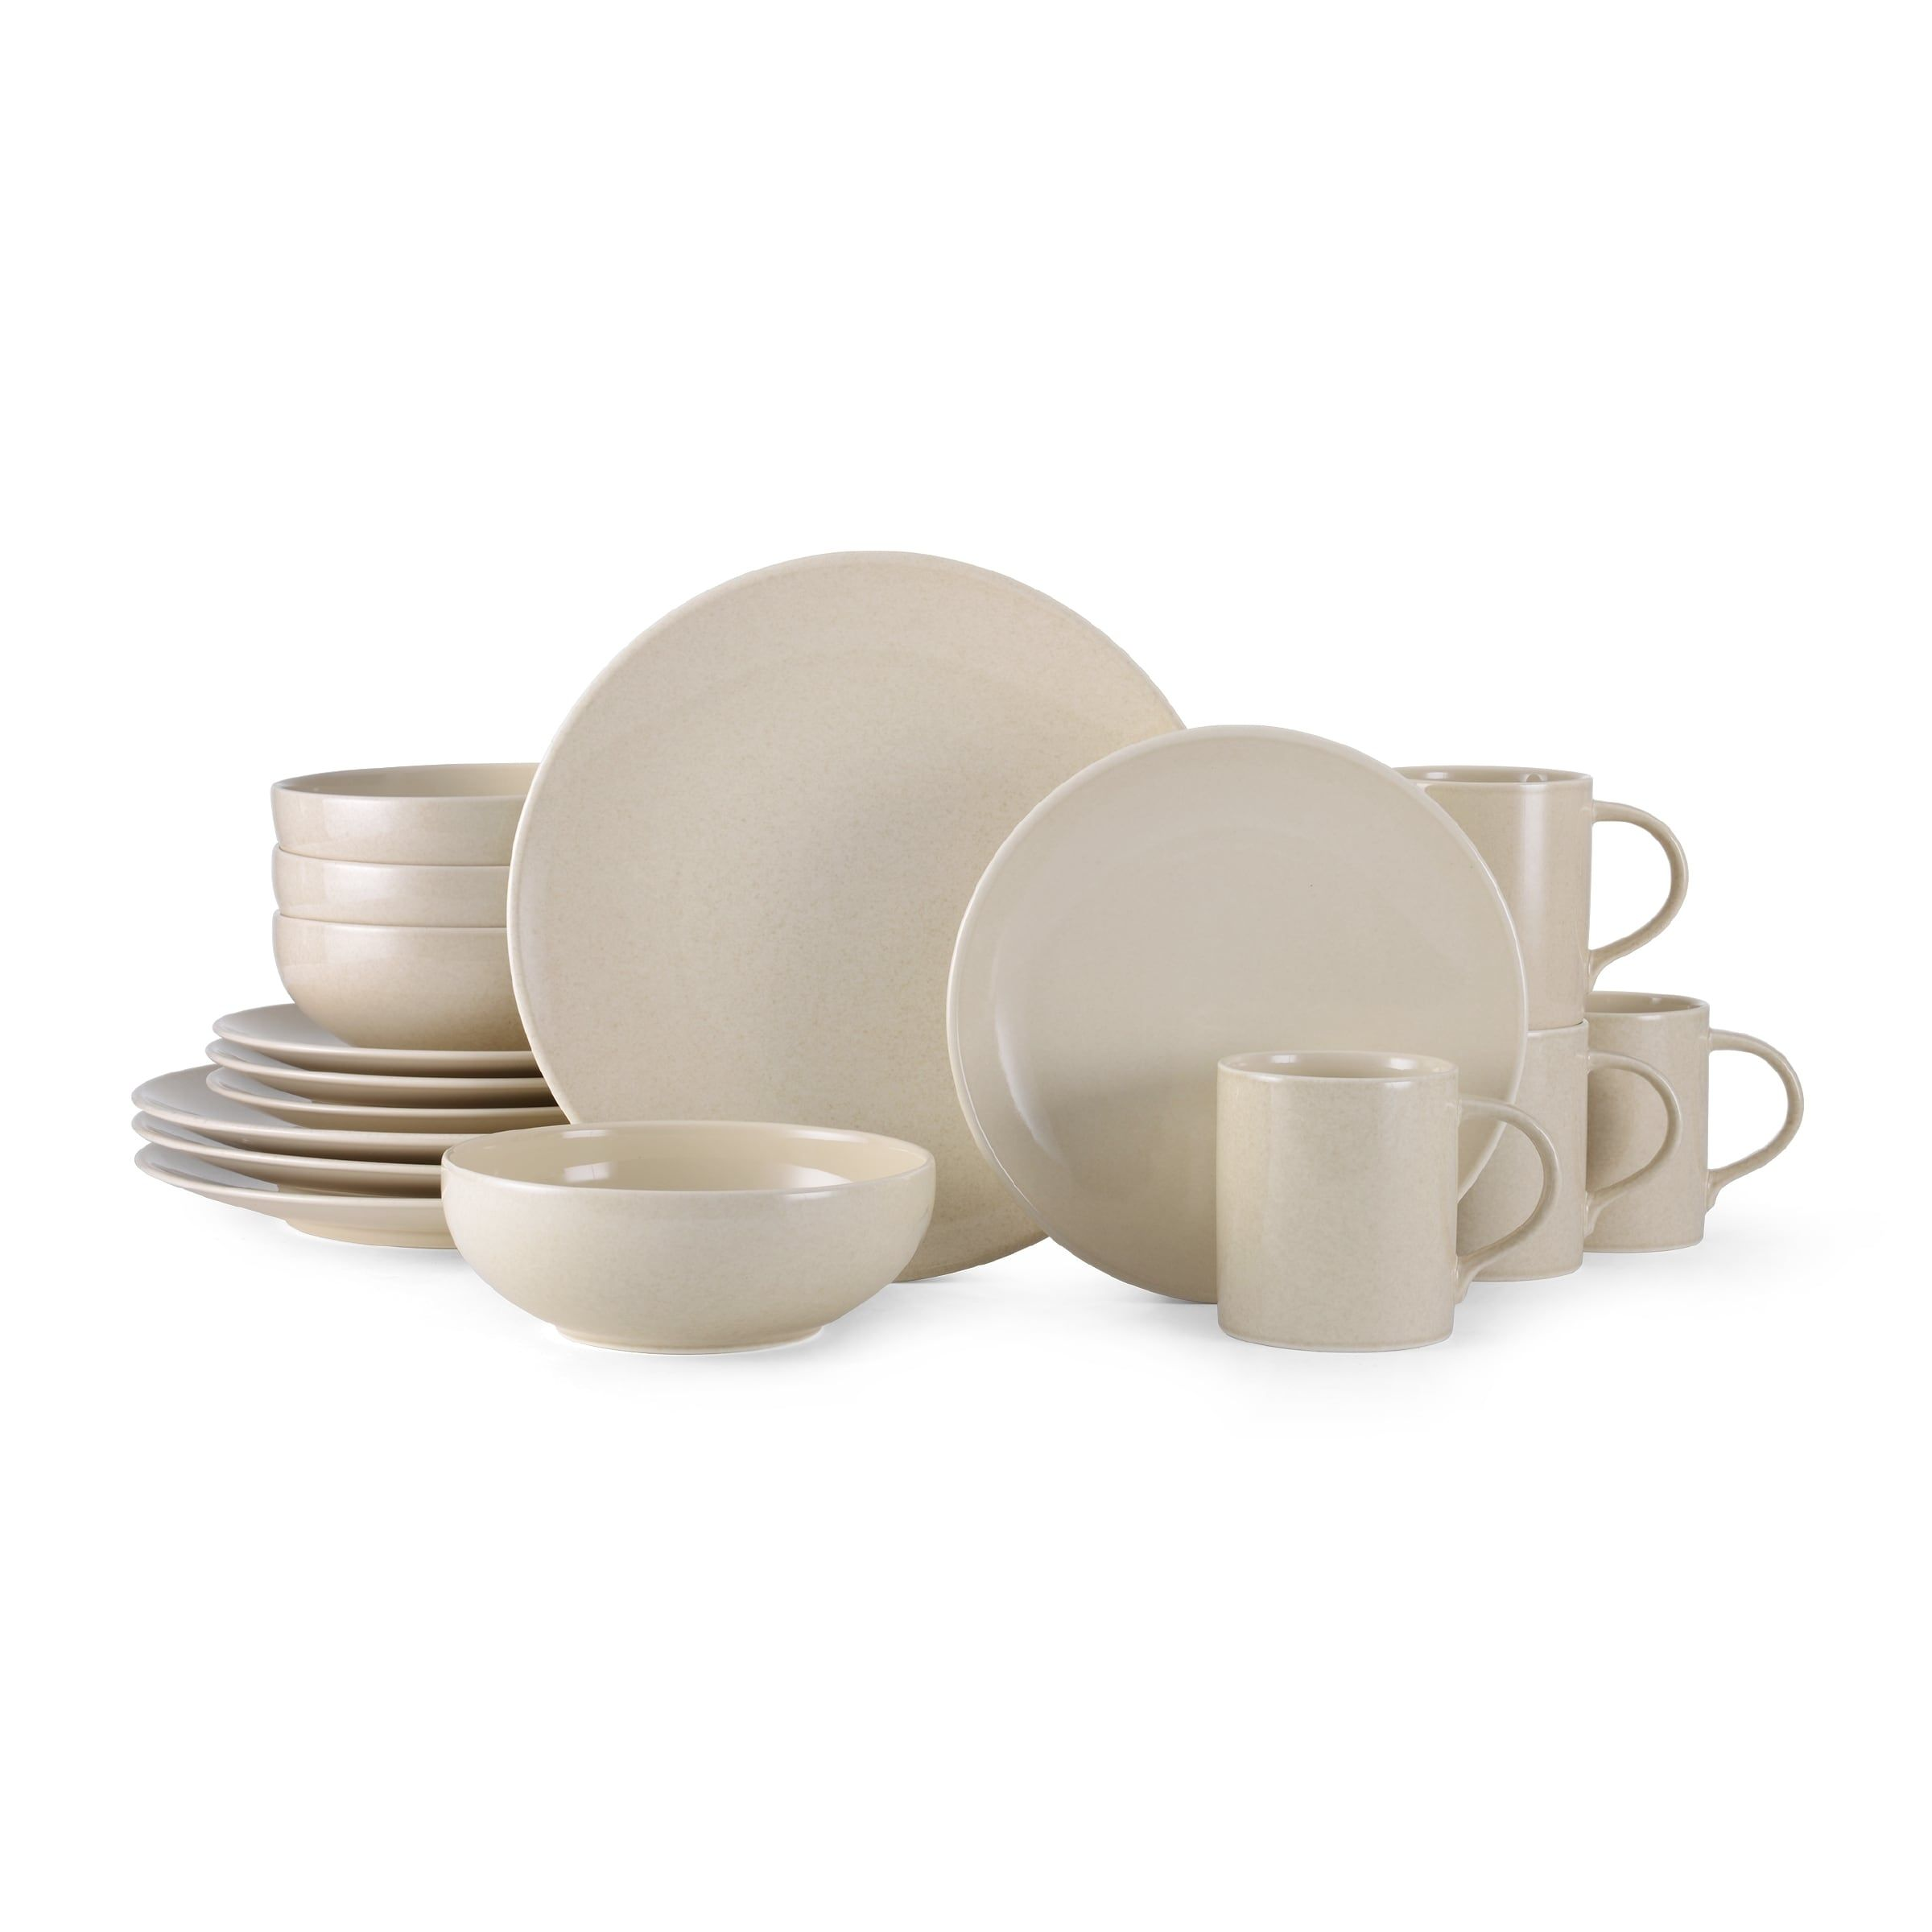 Mikasa Benson Beige Ironstone 16-piece Dinnerware Set - Free Shipping Today - Overstock.  sc 1 st  Pinterest & Mikasa Benson Beige Ironstone 16-piece Dinnerware Set - Free ...